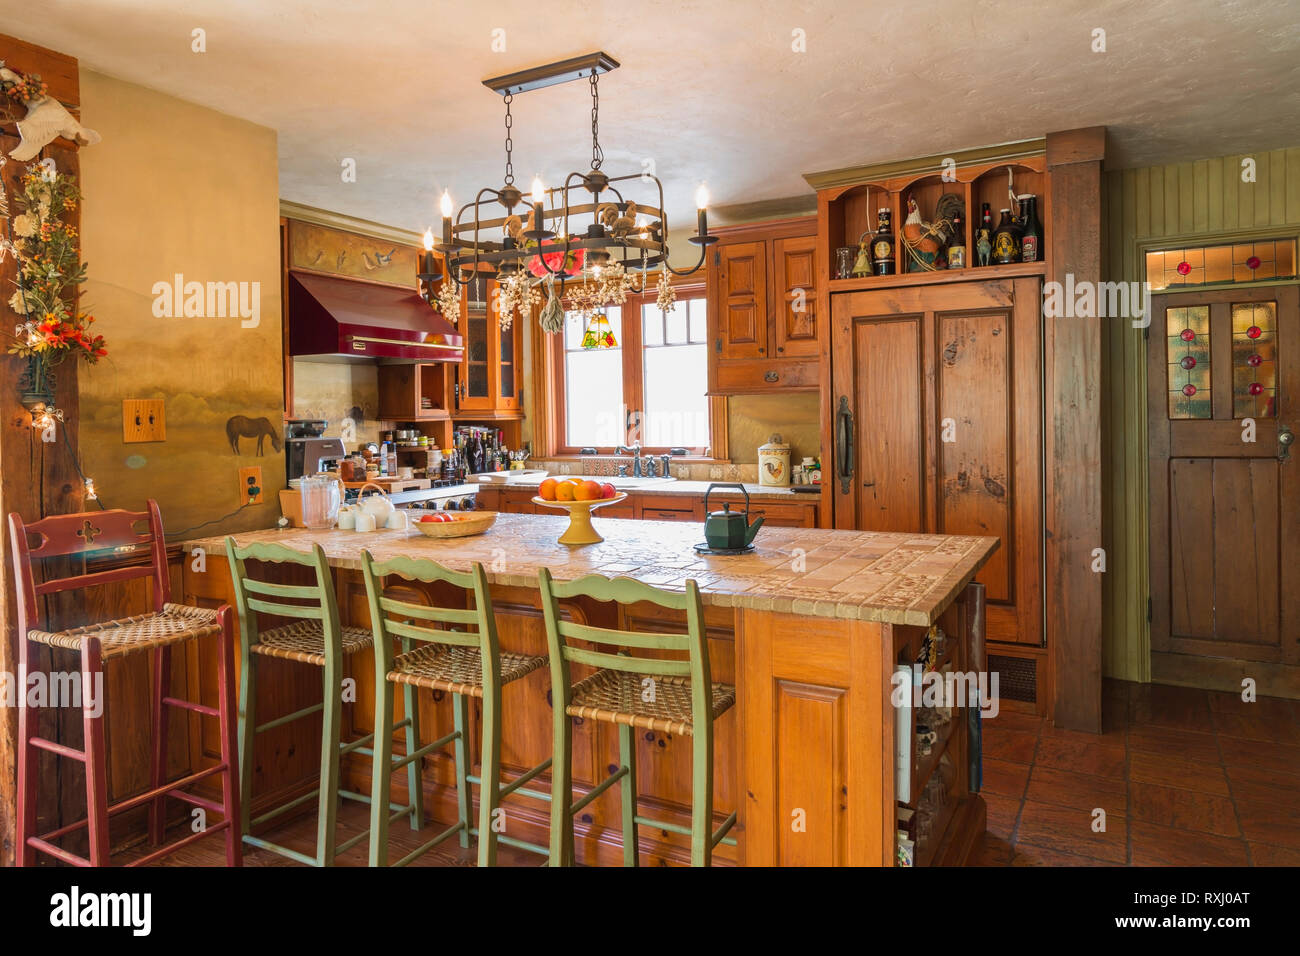 Stone and inlaid ceramic tile top pinewood island with wood and woven rawhide seat chairs and cabinets, Ultraline professional gas stove range hood an - Stock Image